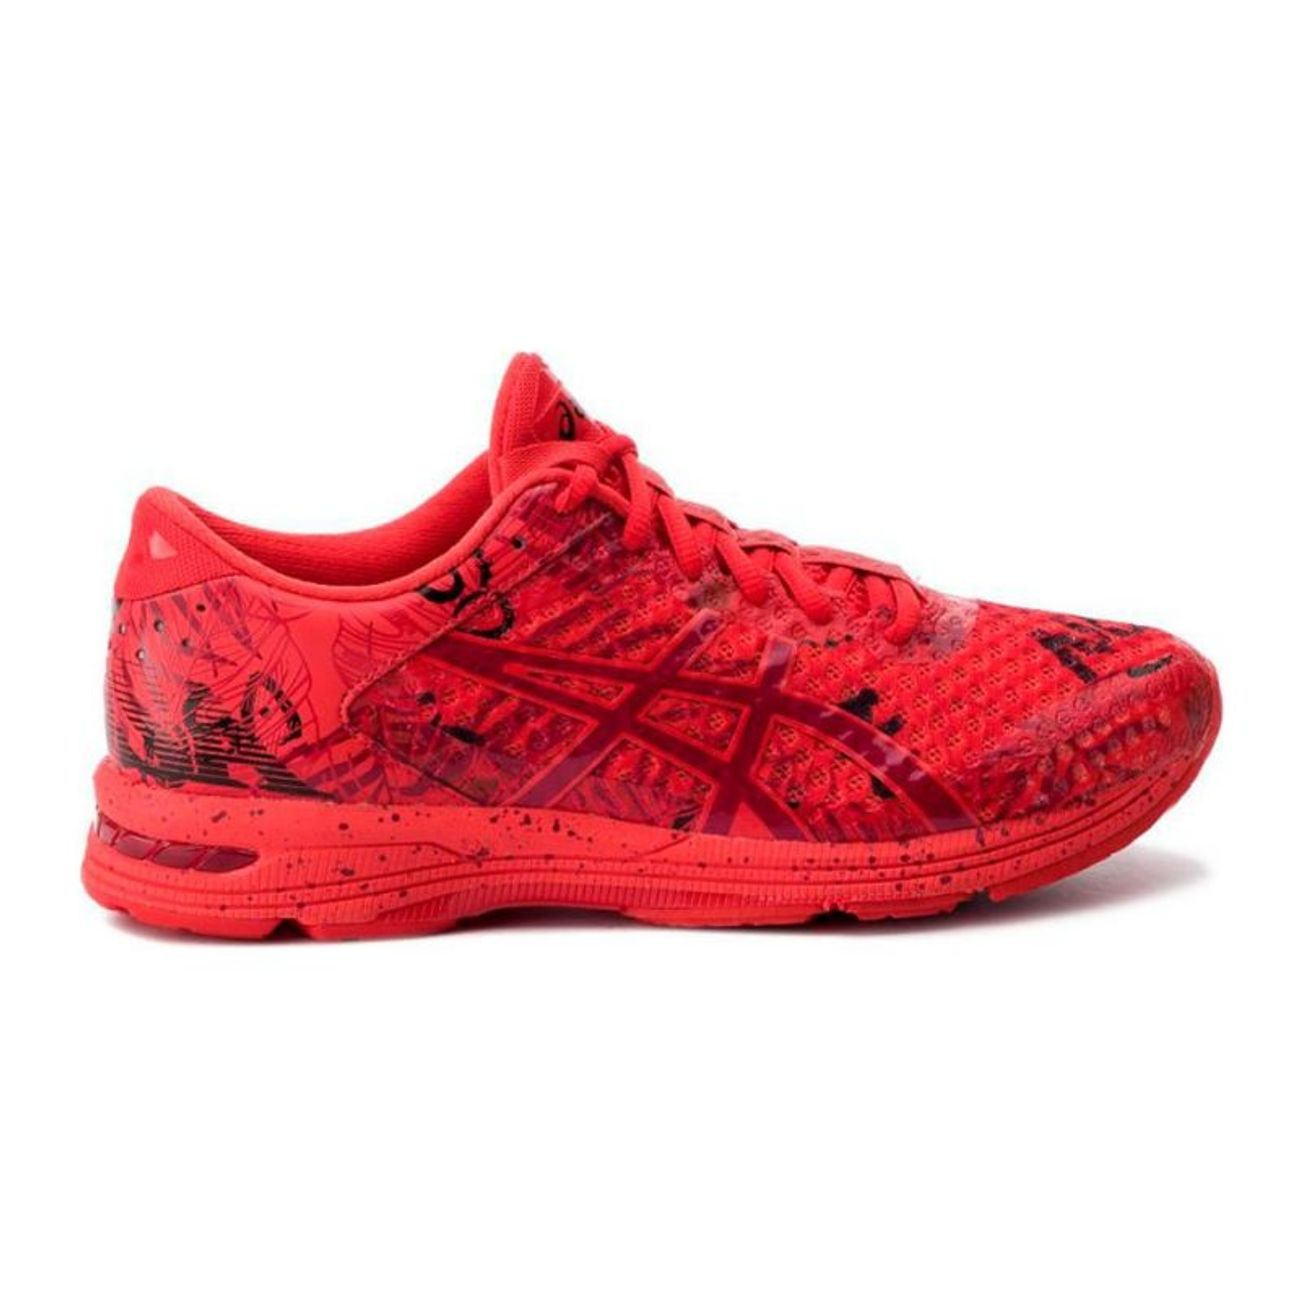 1011a631 600 Tri Rouge Noosa Gel Adulte Padel Asics 11 uwOZkPXiT